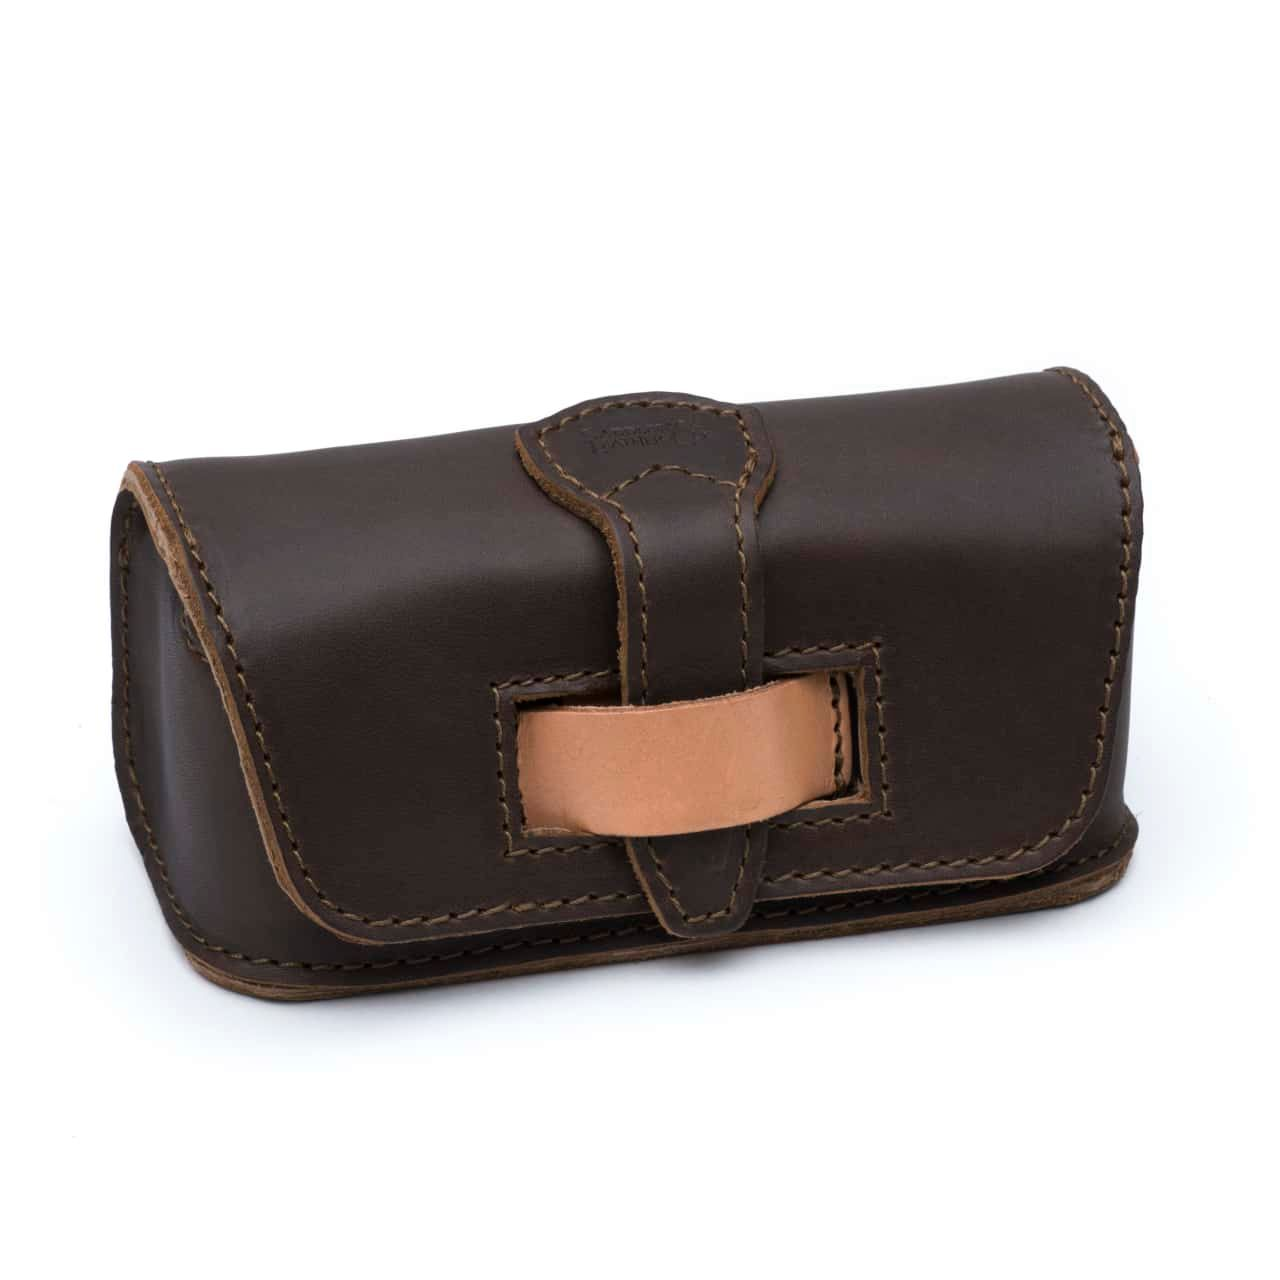 Hard Sunglass Case - Dark Coffee Brown